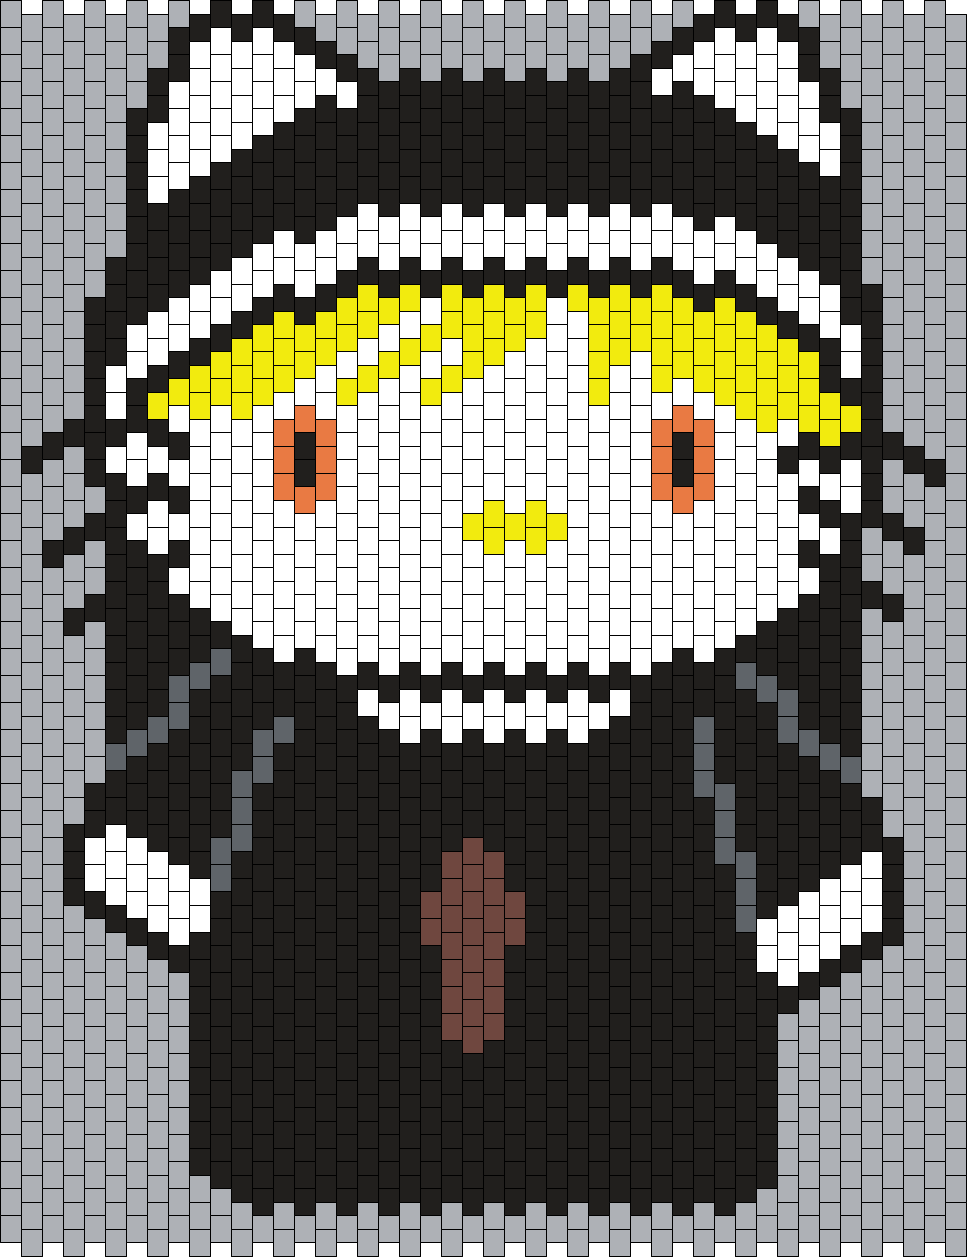 Sister Mary Eunice Hello Kitty From American Horror Story Asylum